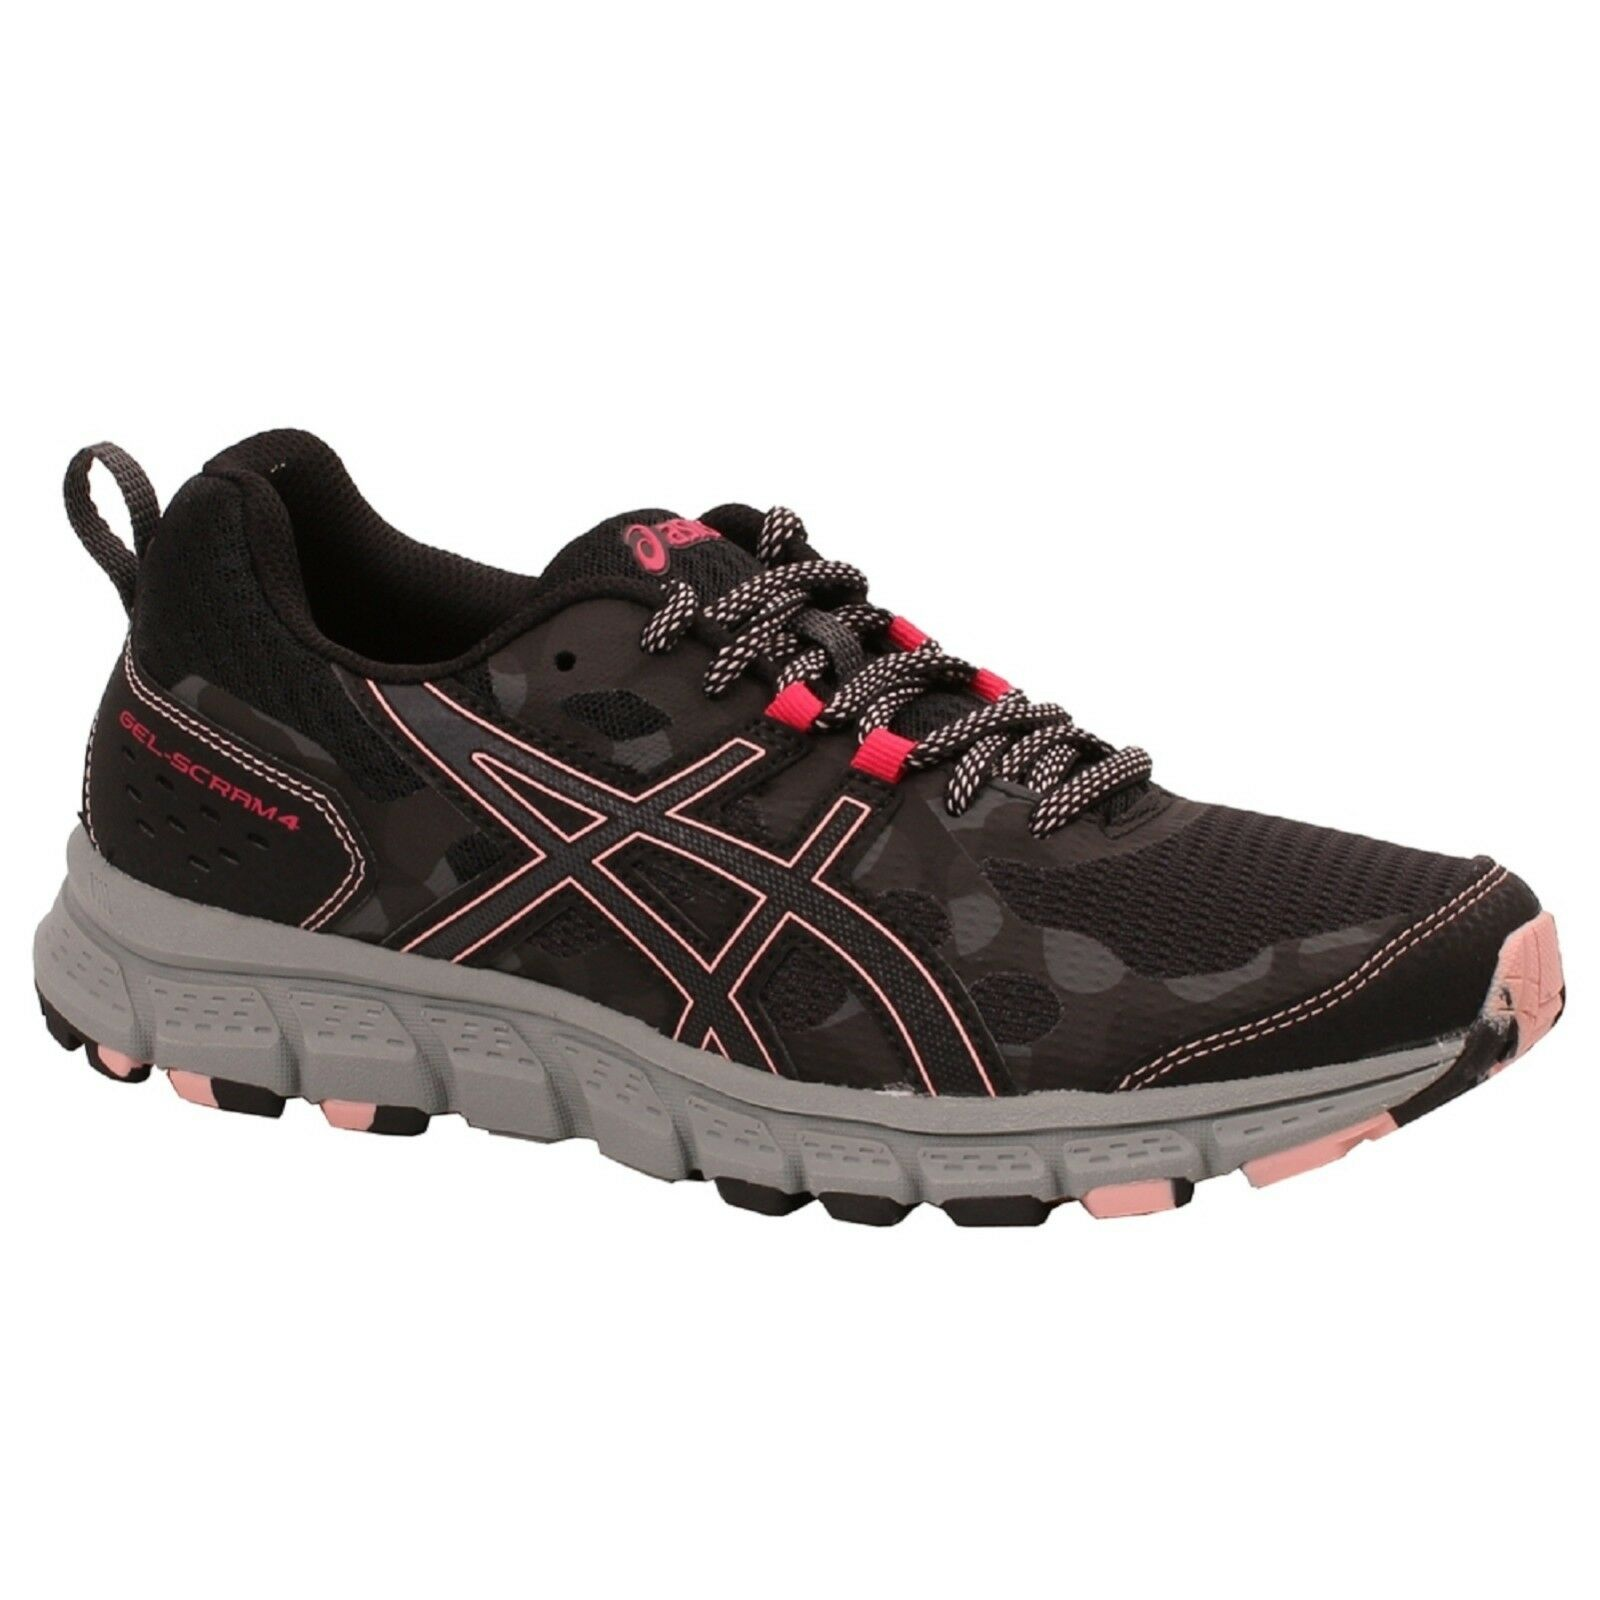 Women's Asics GEL-SCRAM 4 1012A039/001 Black/Grey Lace-Up Running Shoes The latest discount shoes for men and women